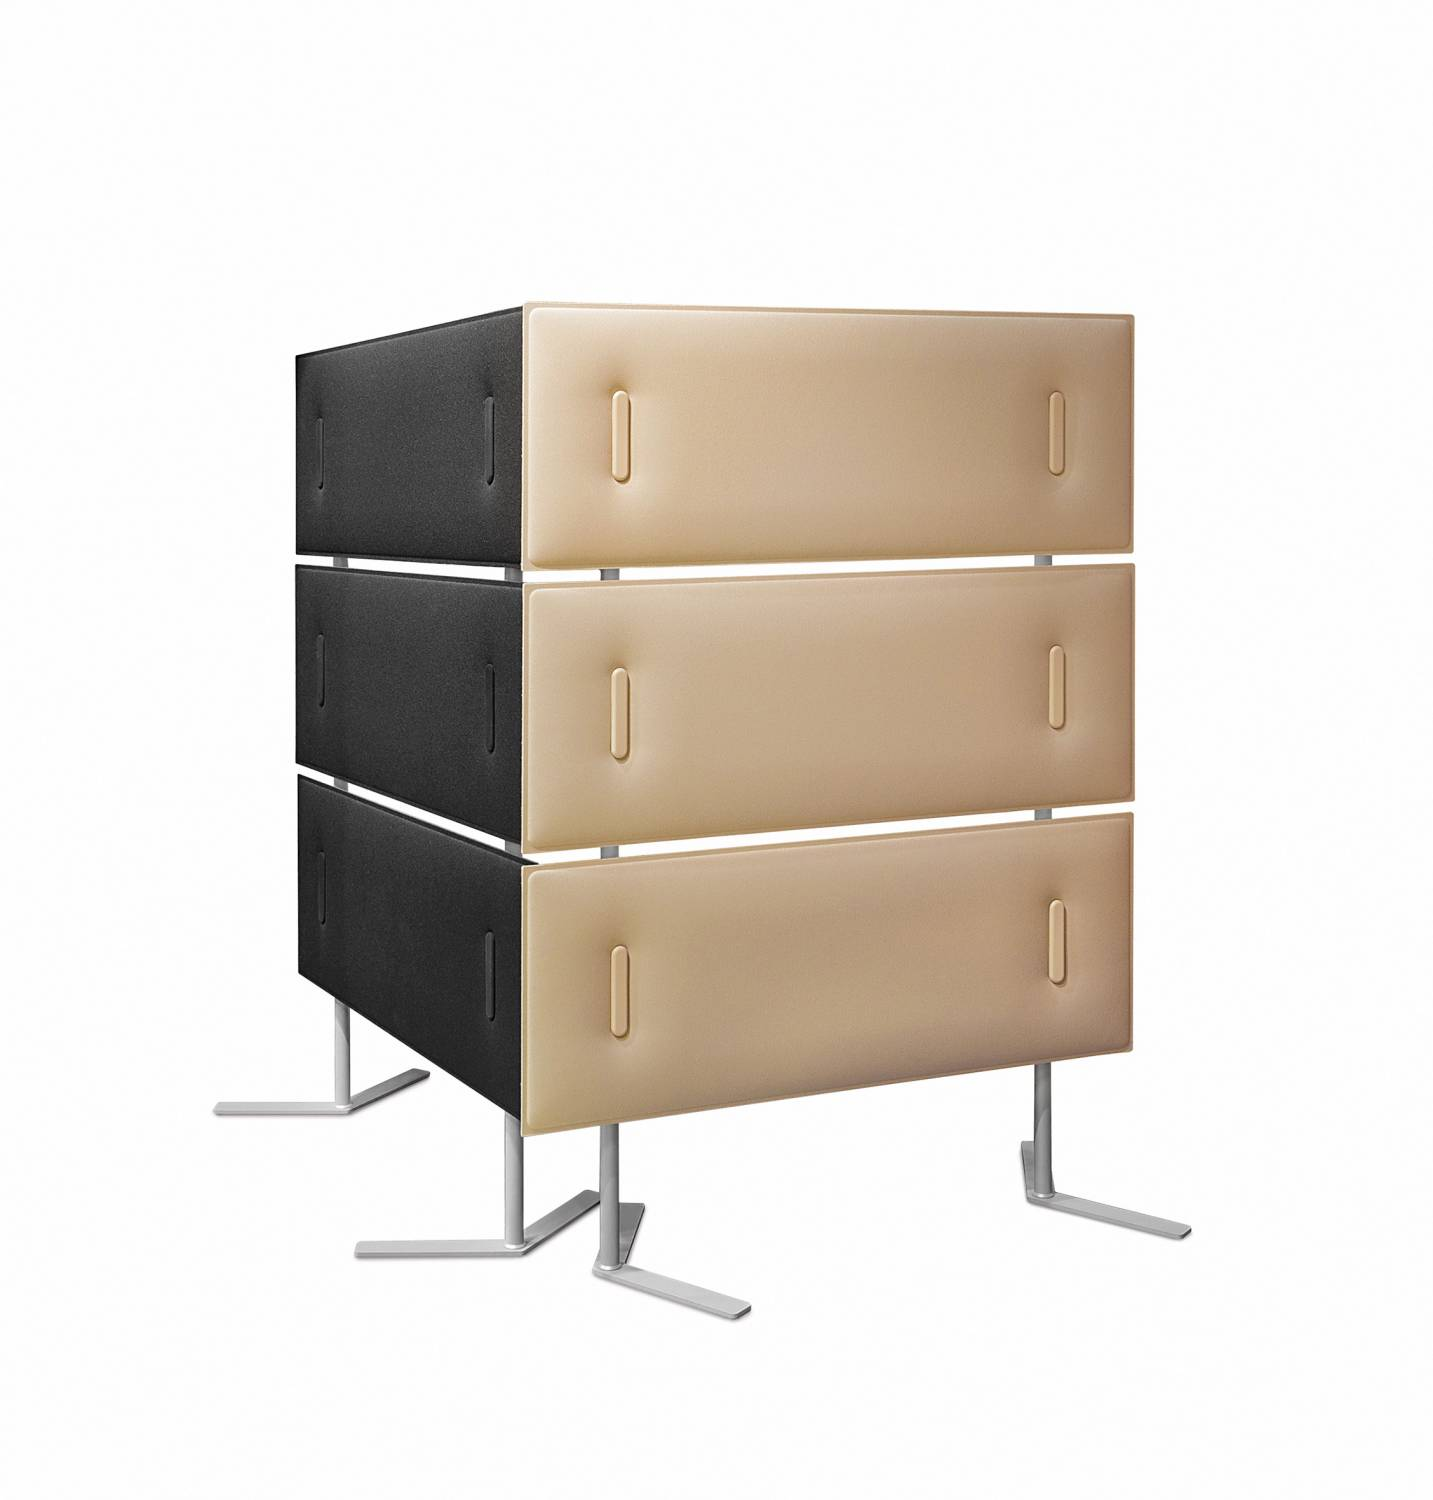 Mitesco-Dividers-Ocee-Sound-Abosrbing-Acoustic-Privacy-Screens-Black-and-Beige